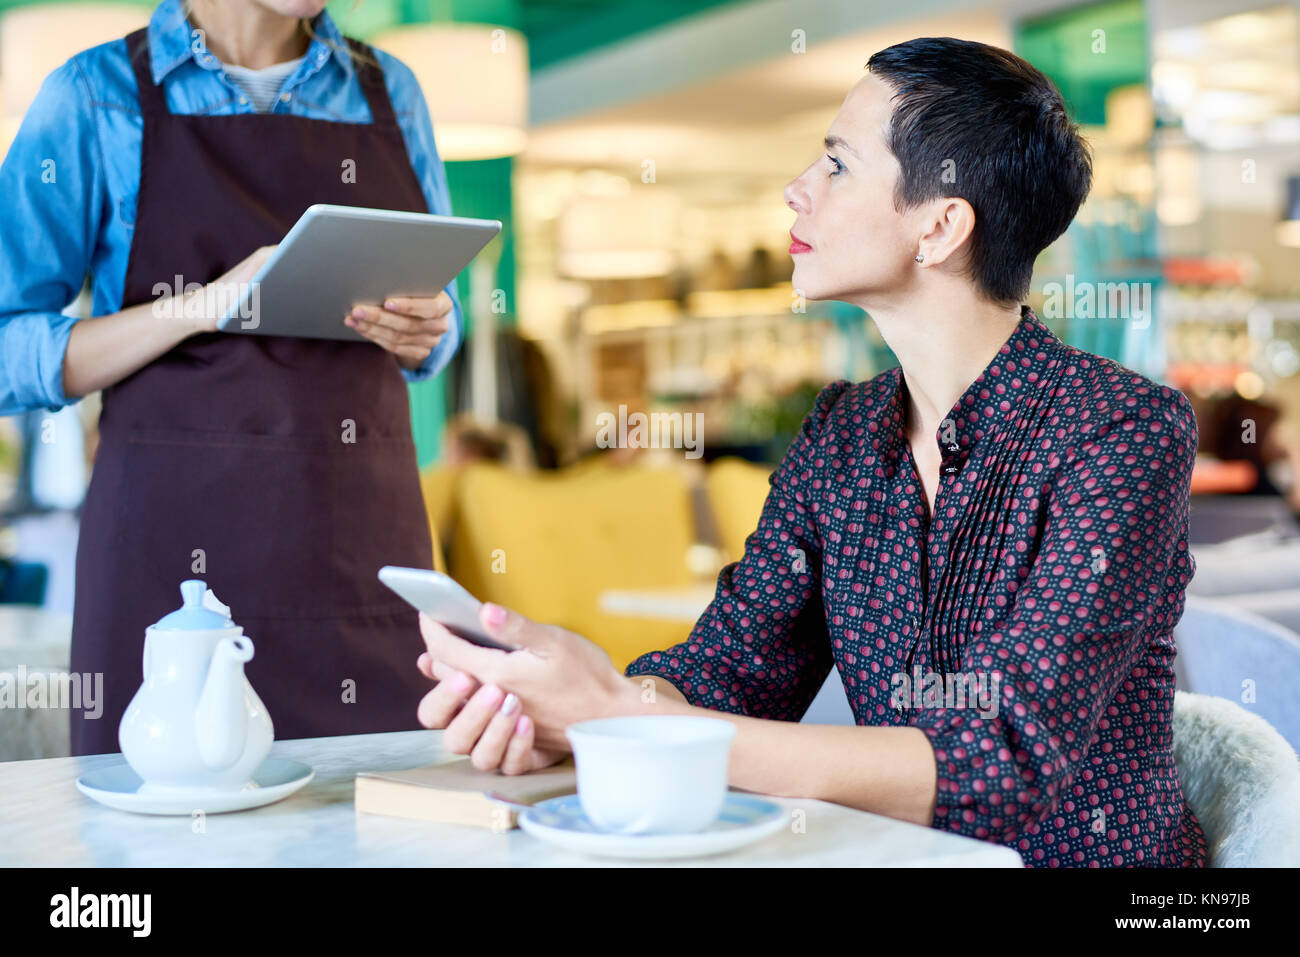 Elegant Woman Ordering Food in Cafe - Stock Image